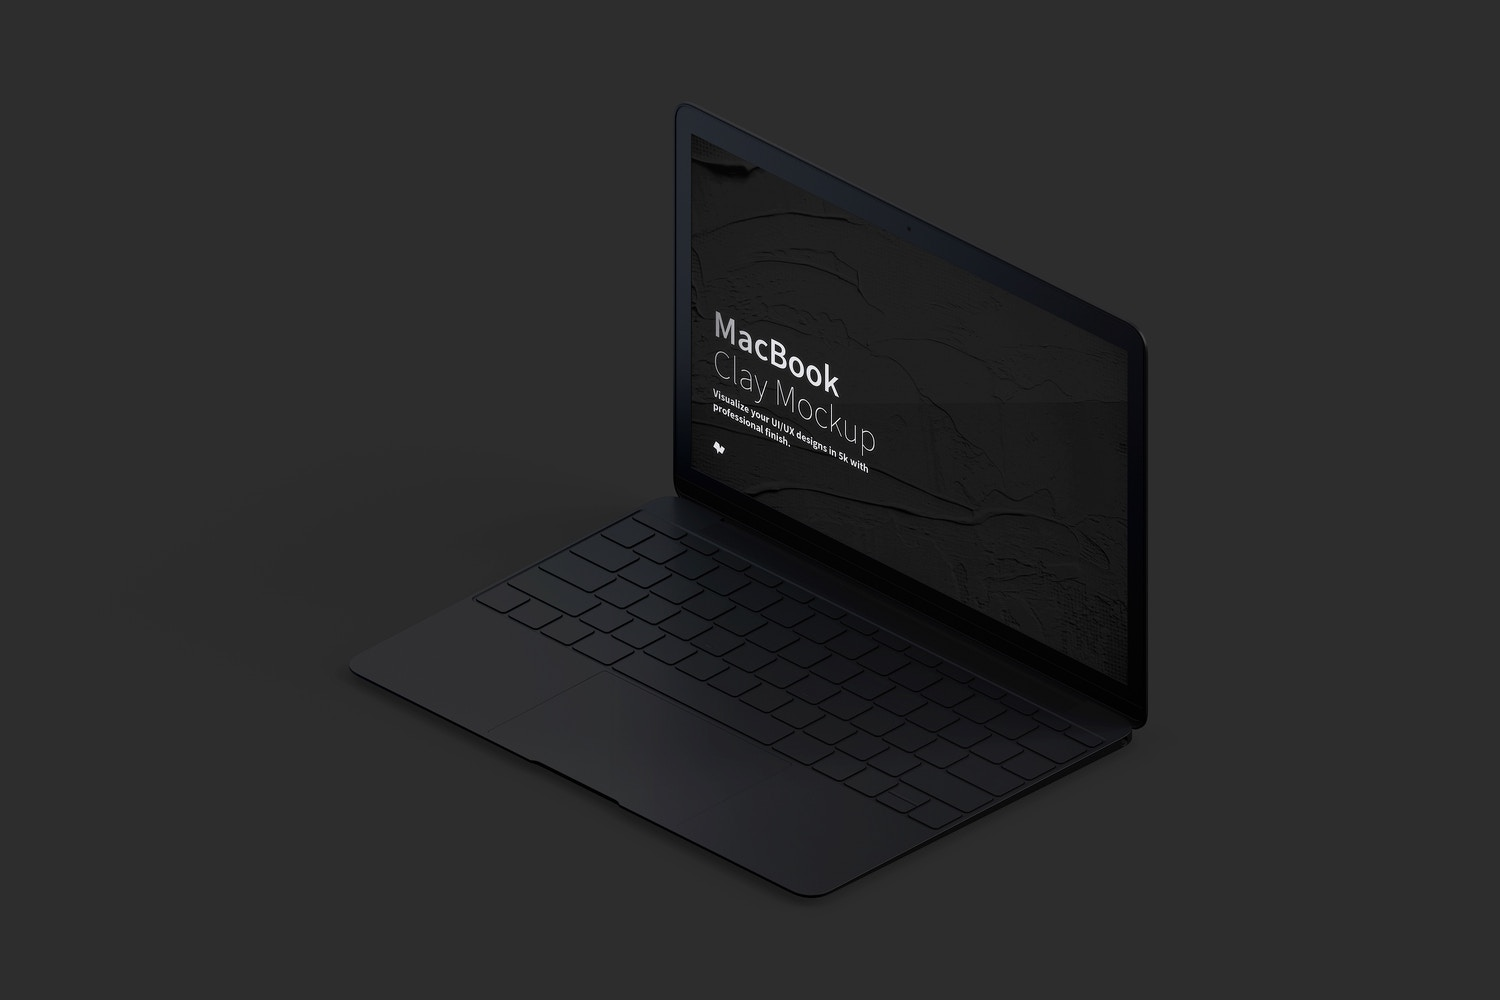 Clay MacBook Mockup, Isometric Right View (5) by Original Mockups on Original Mockups